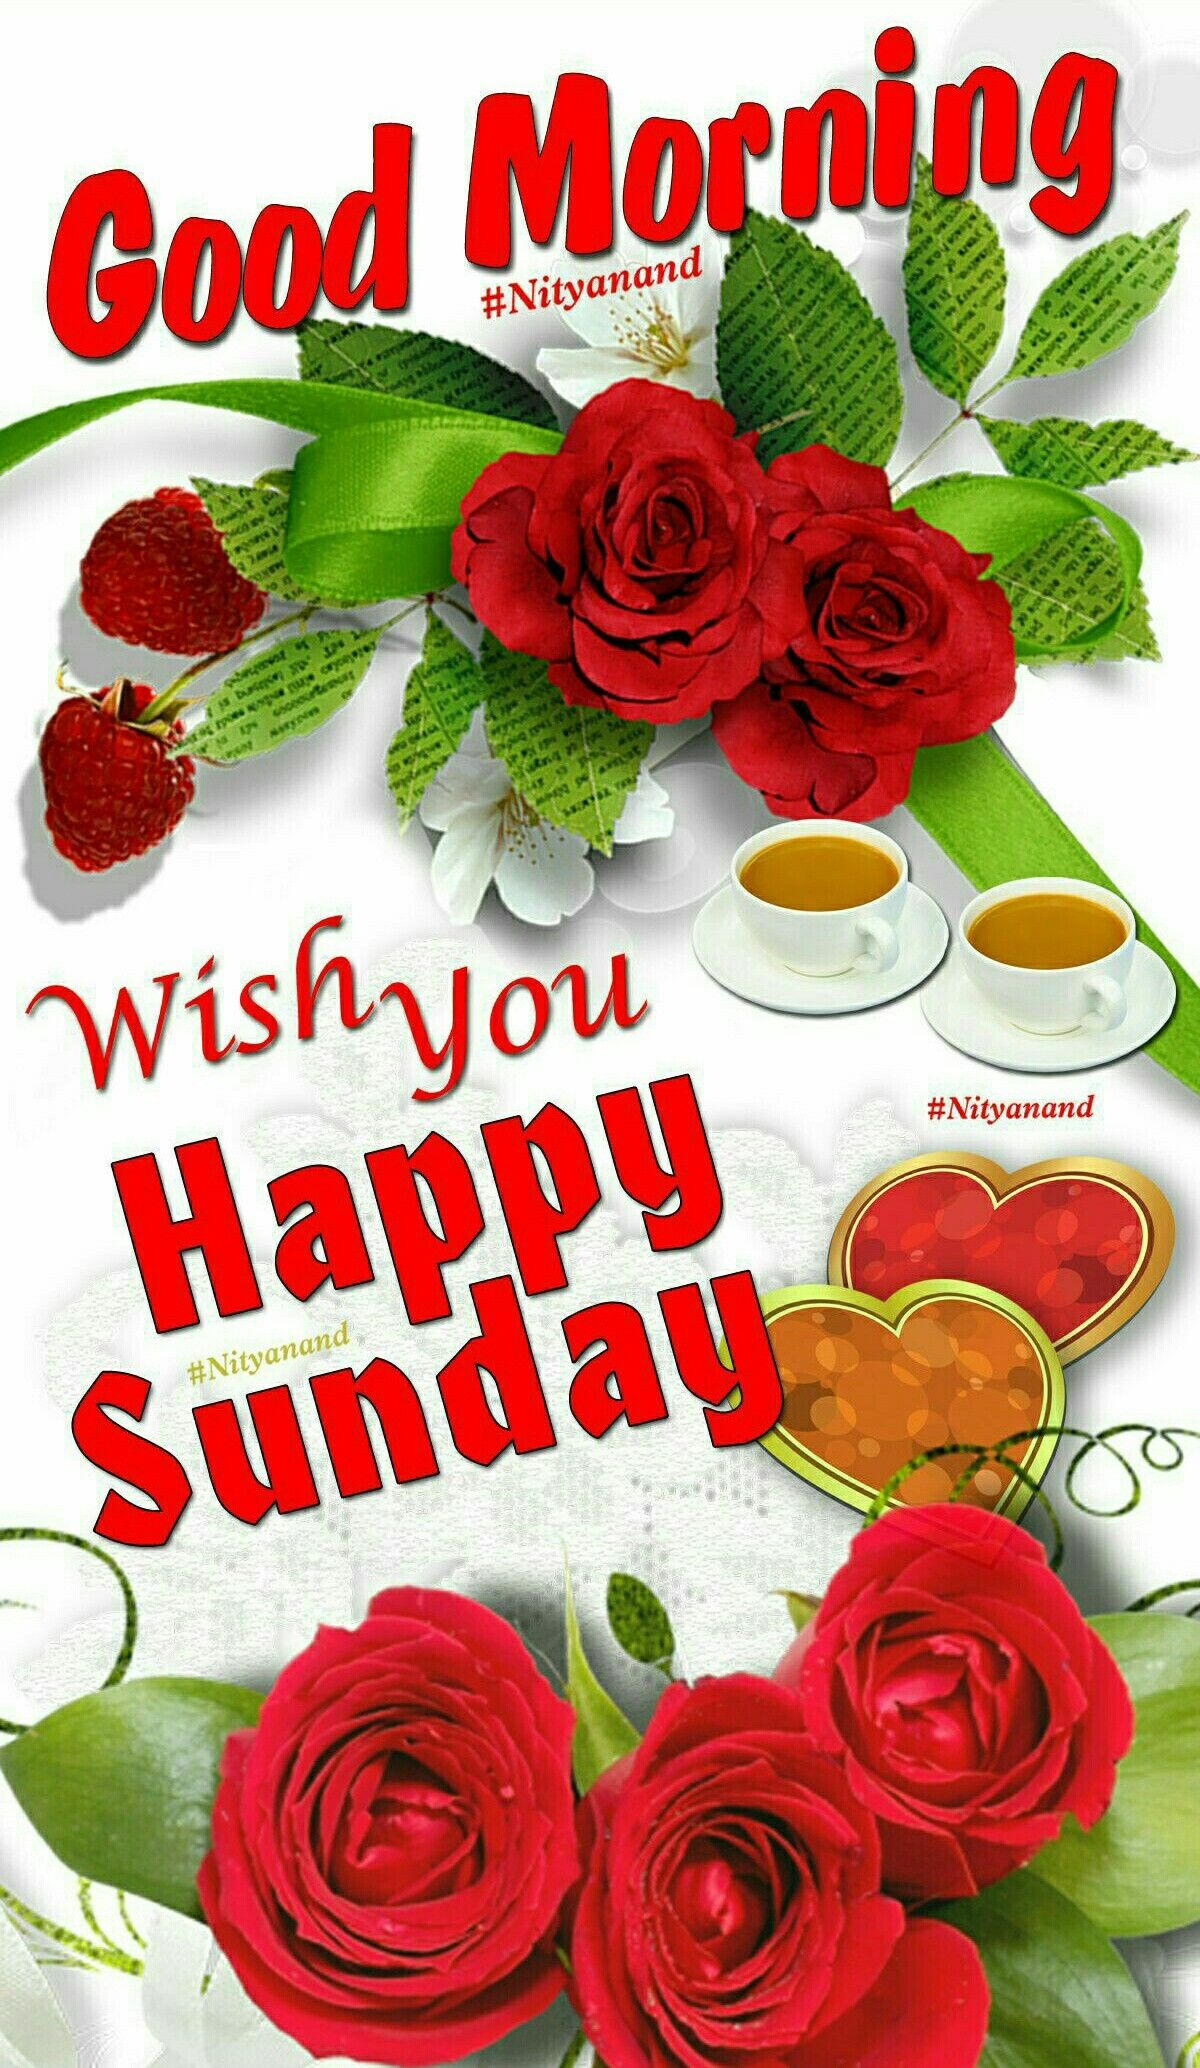 Good Morning Sister And Yours Have A Lovely Sunday God Bless